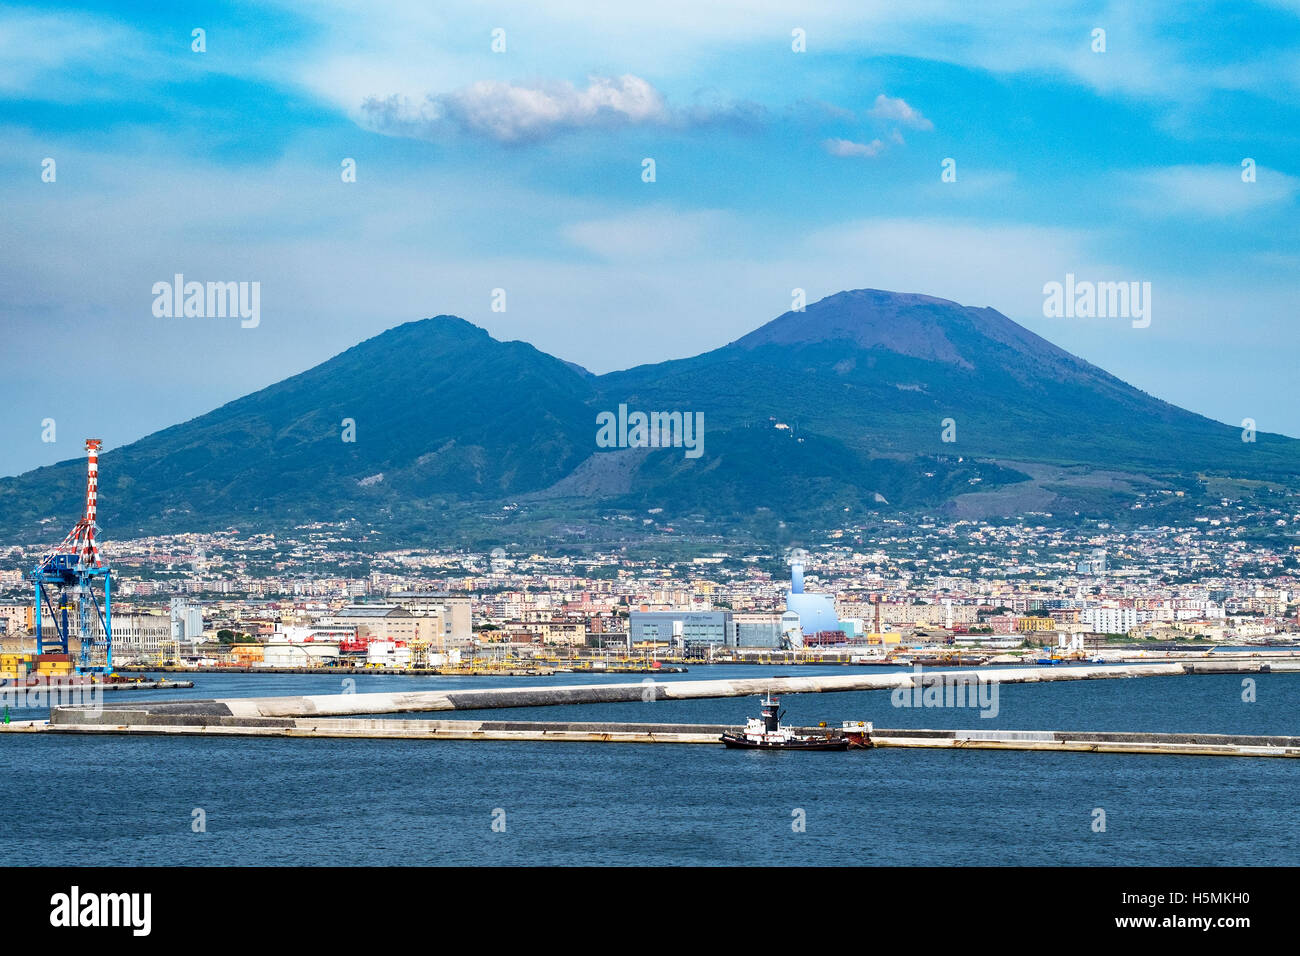 Mount Vesuvius looms over the city of Naples in Italy. - Stock Image